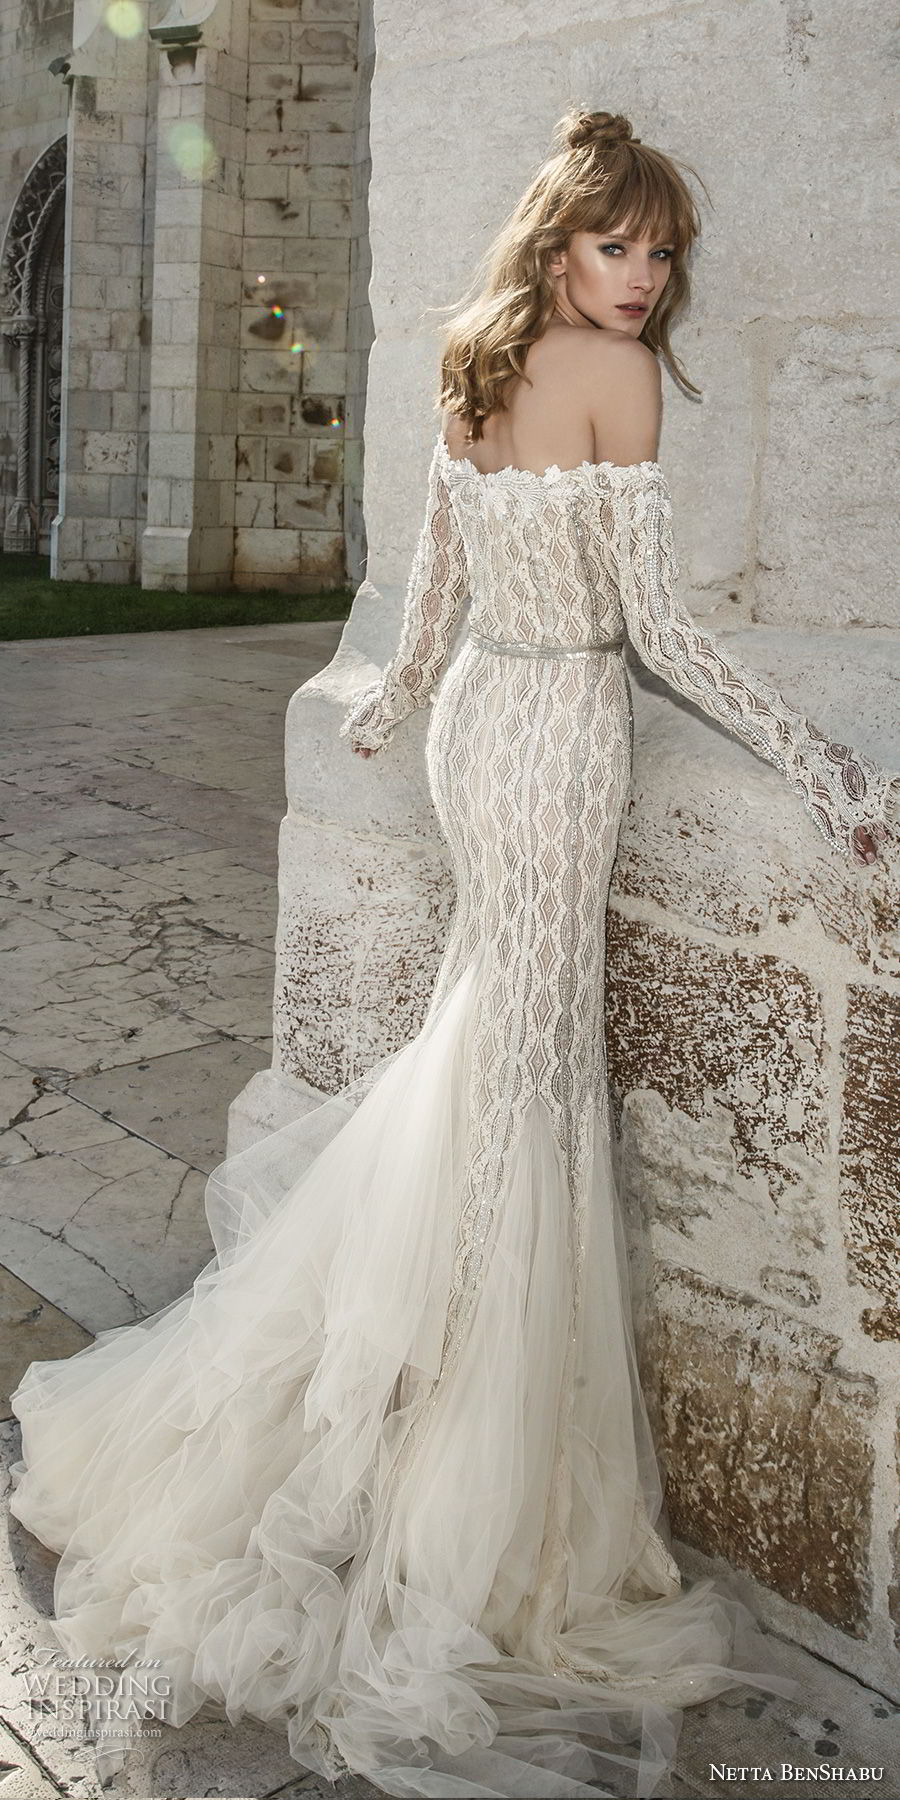 netta benshabu 2017 bridal off the shoulder long sleeves sweetheart neckline full embellishment elegant mermaid wedding dress sweep train (21) bv